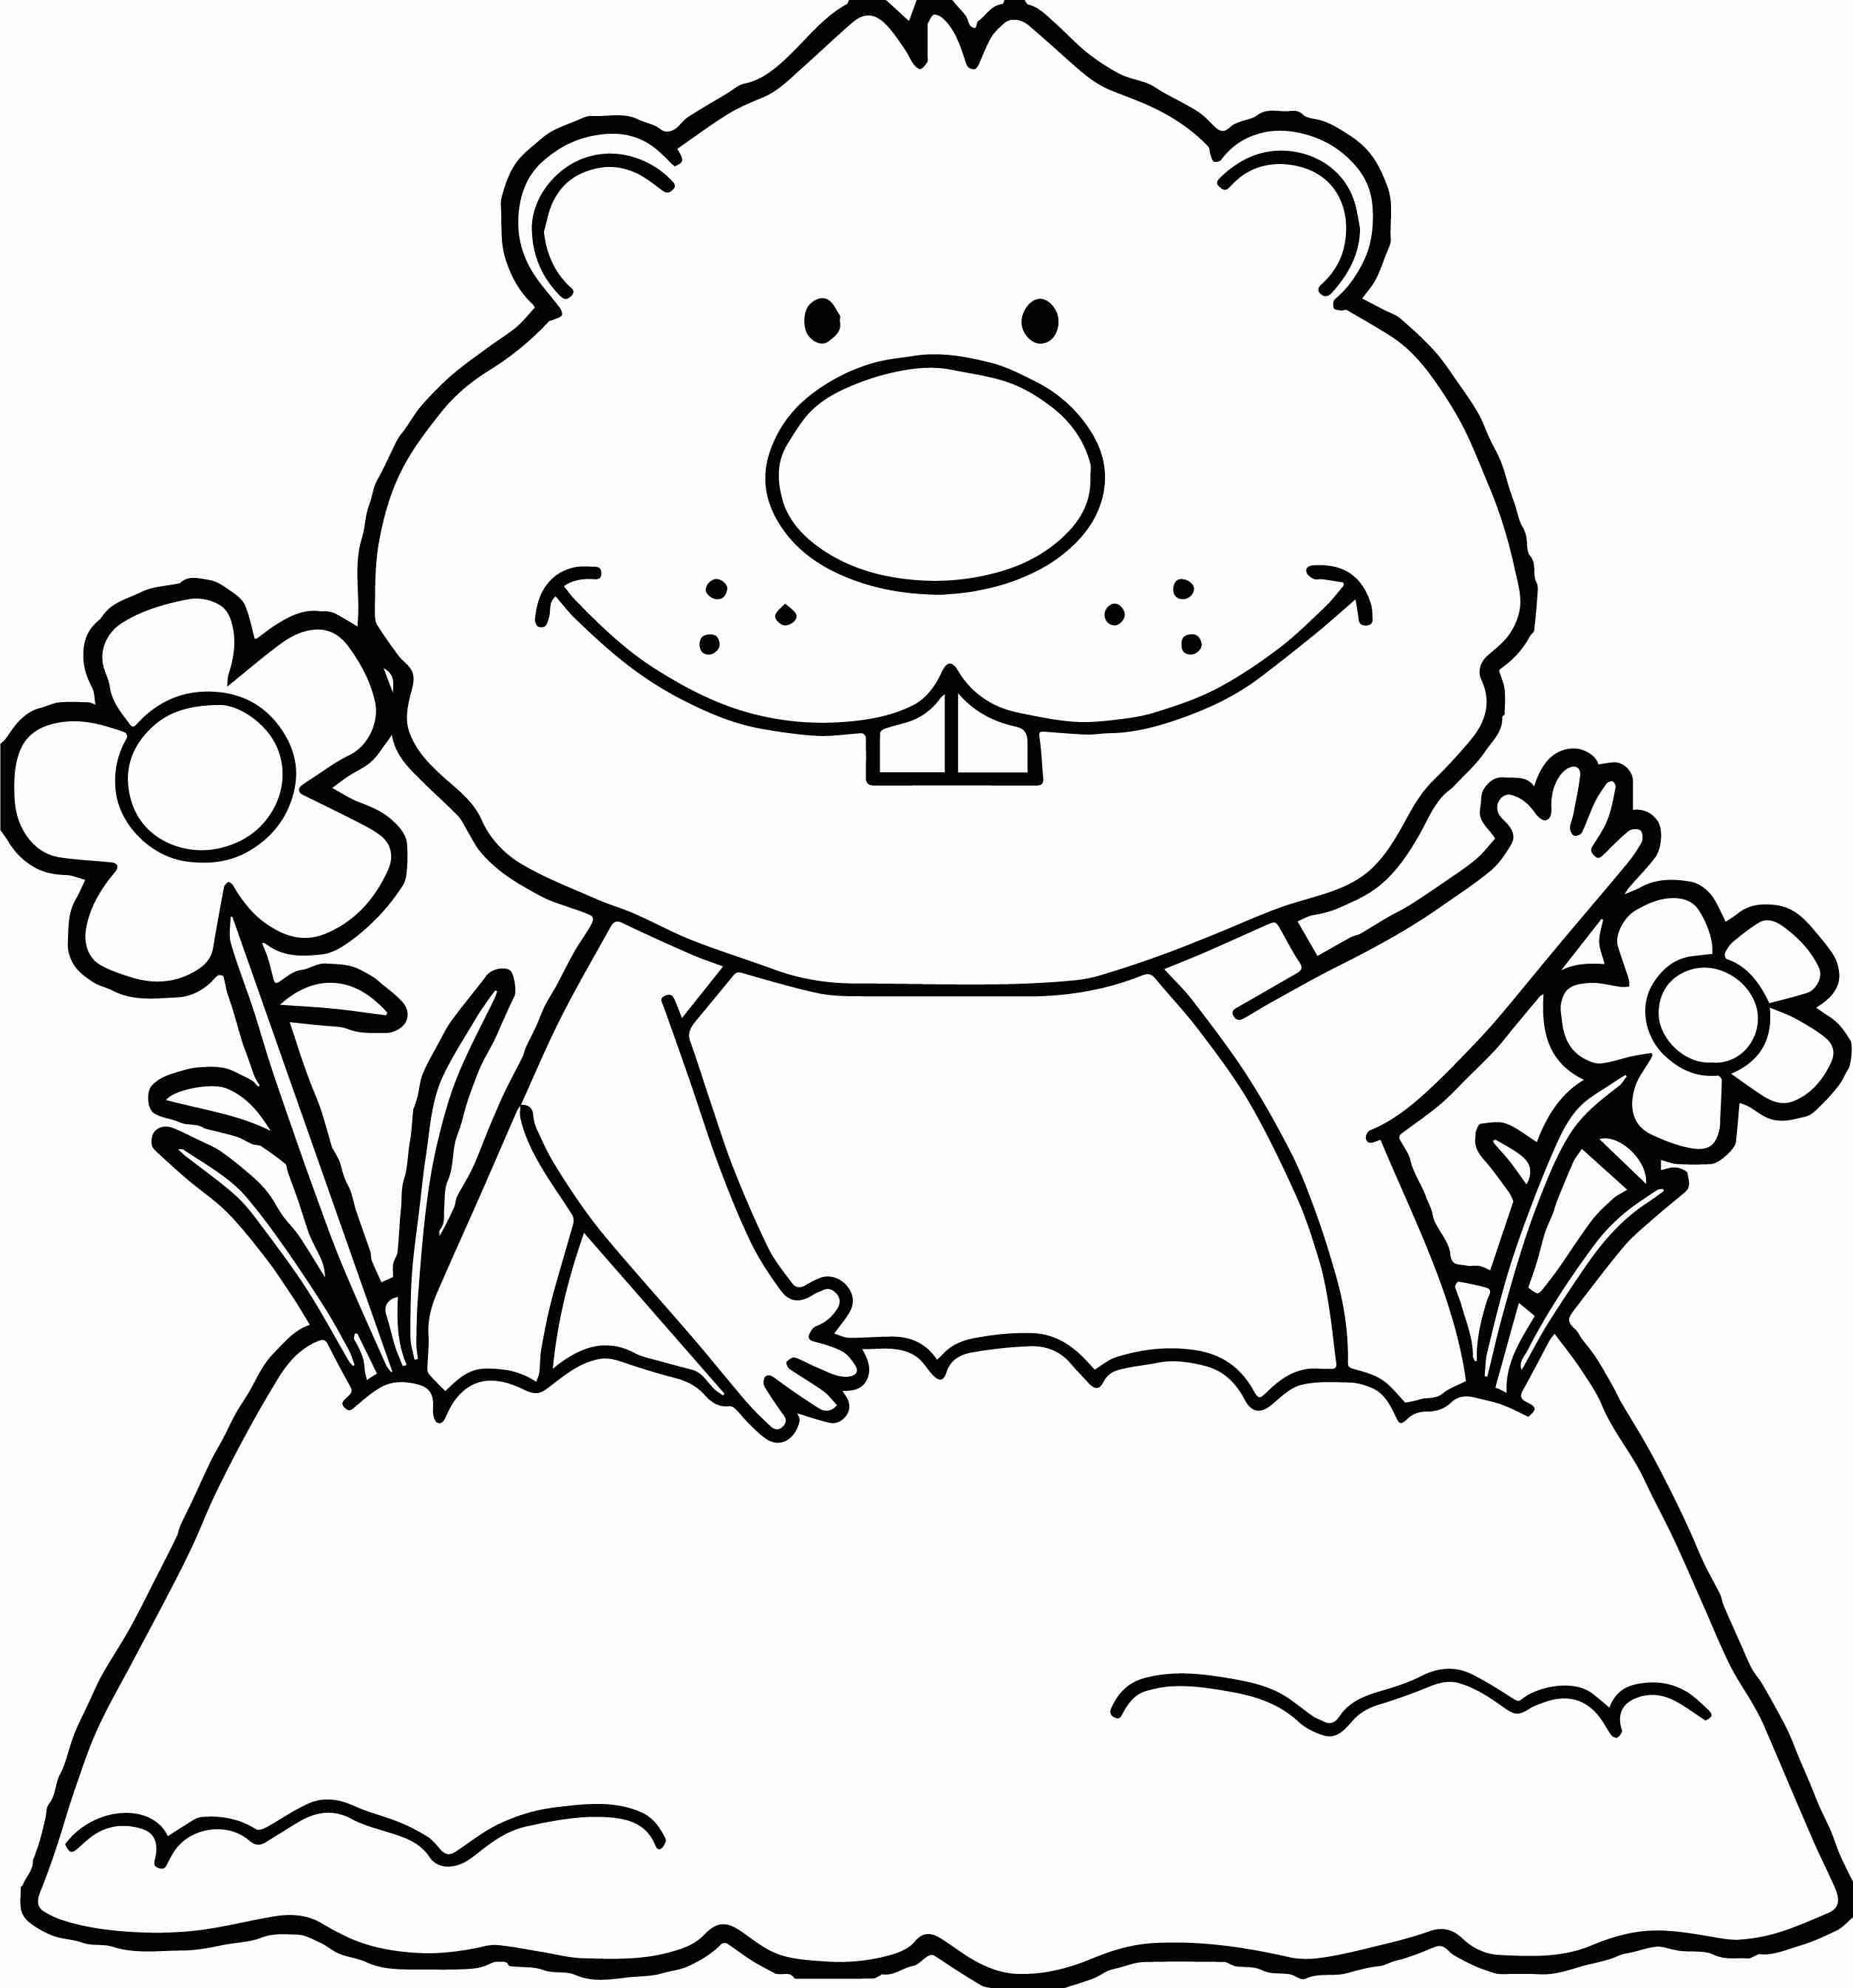 Groundhog Day Printable Coloring Pages Elegant Groundhog Day Coloring Pages Free Printable Coloring Pages